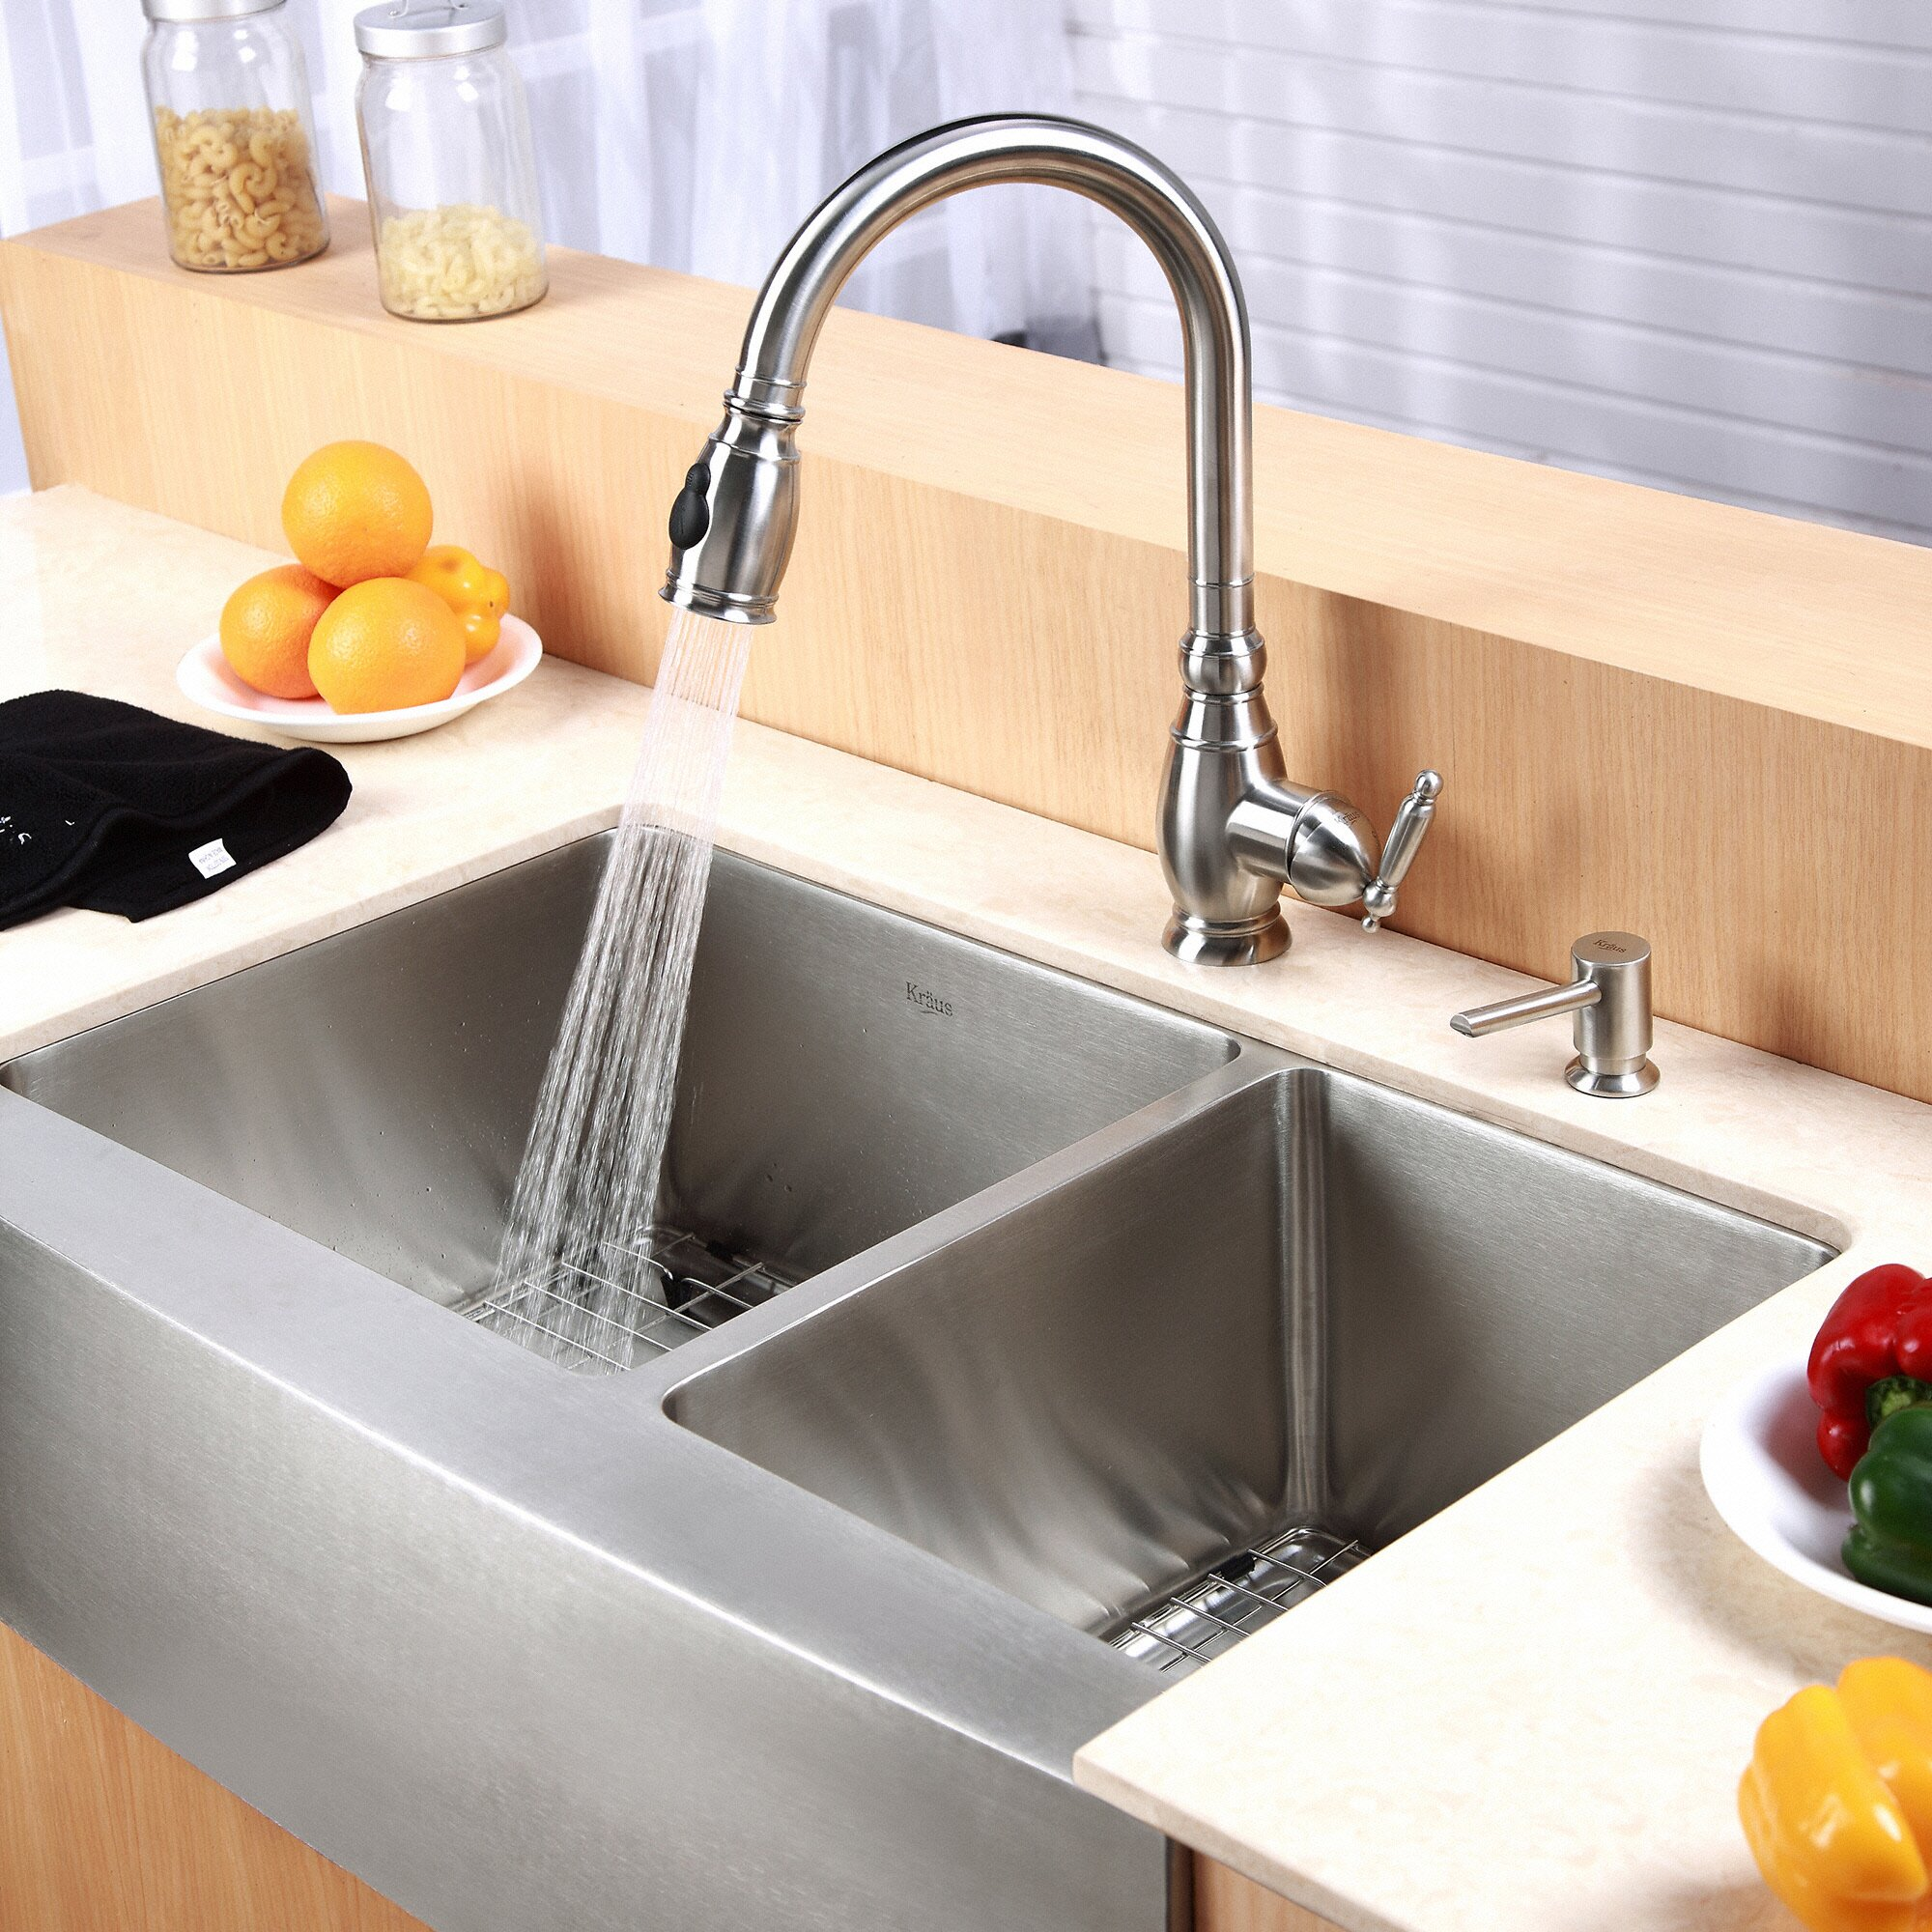 Farmhouse Double Bowl Sink : Kraus Farmhouse 33